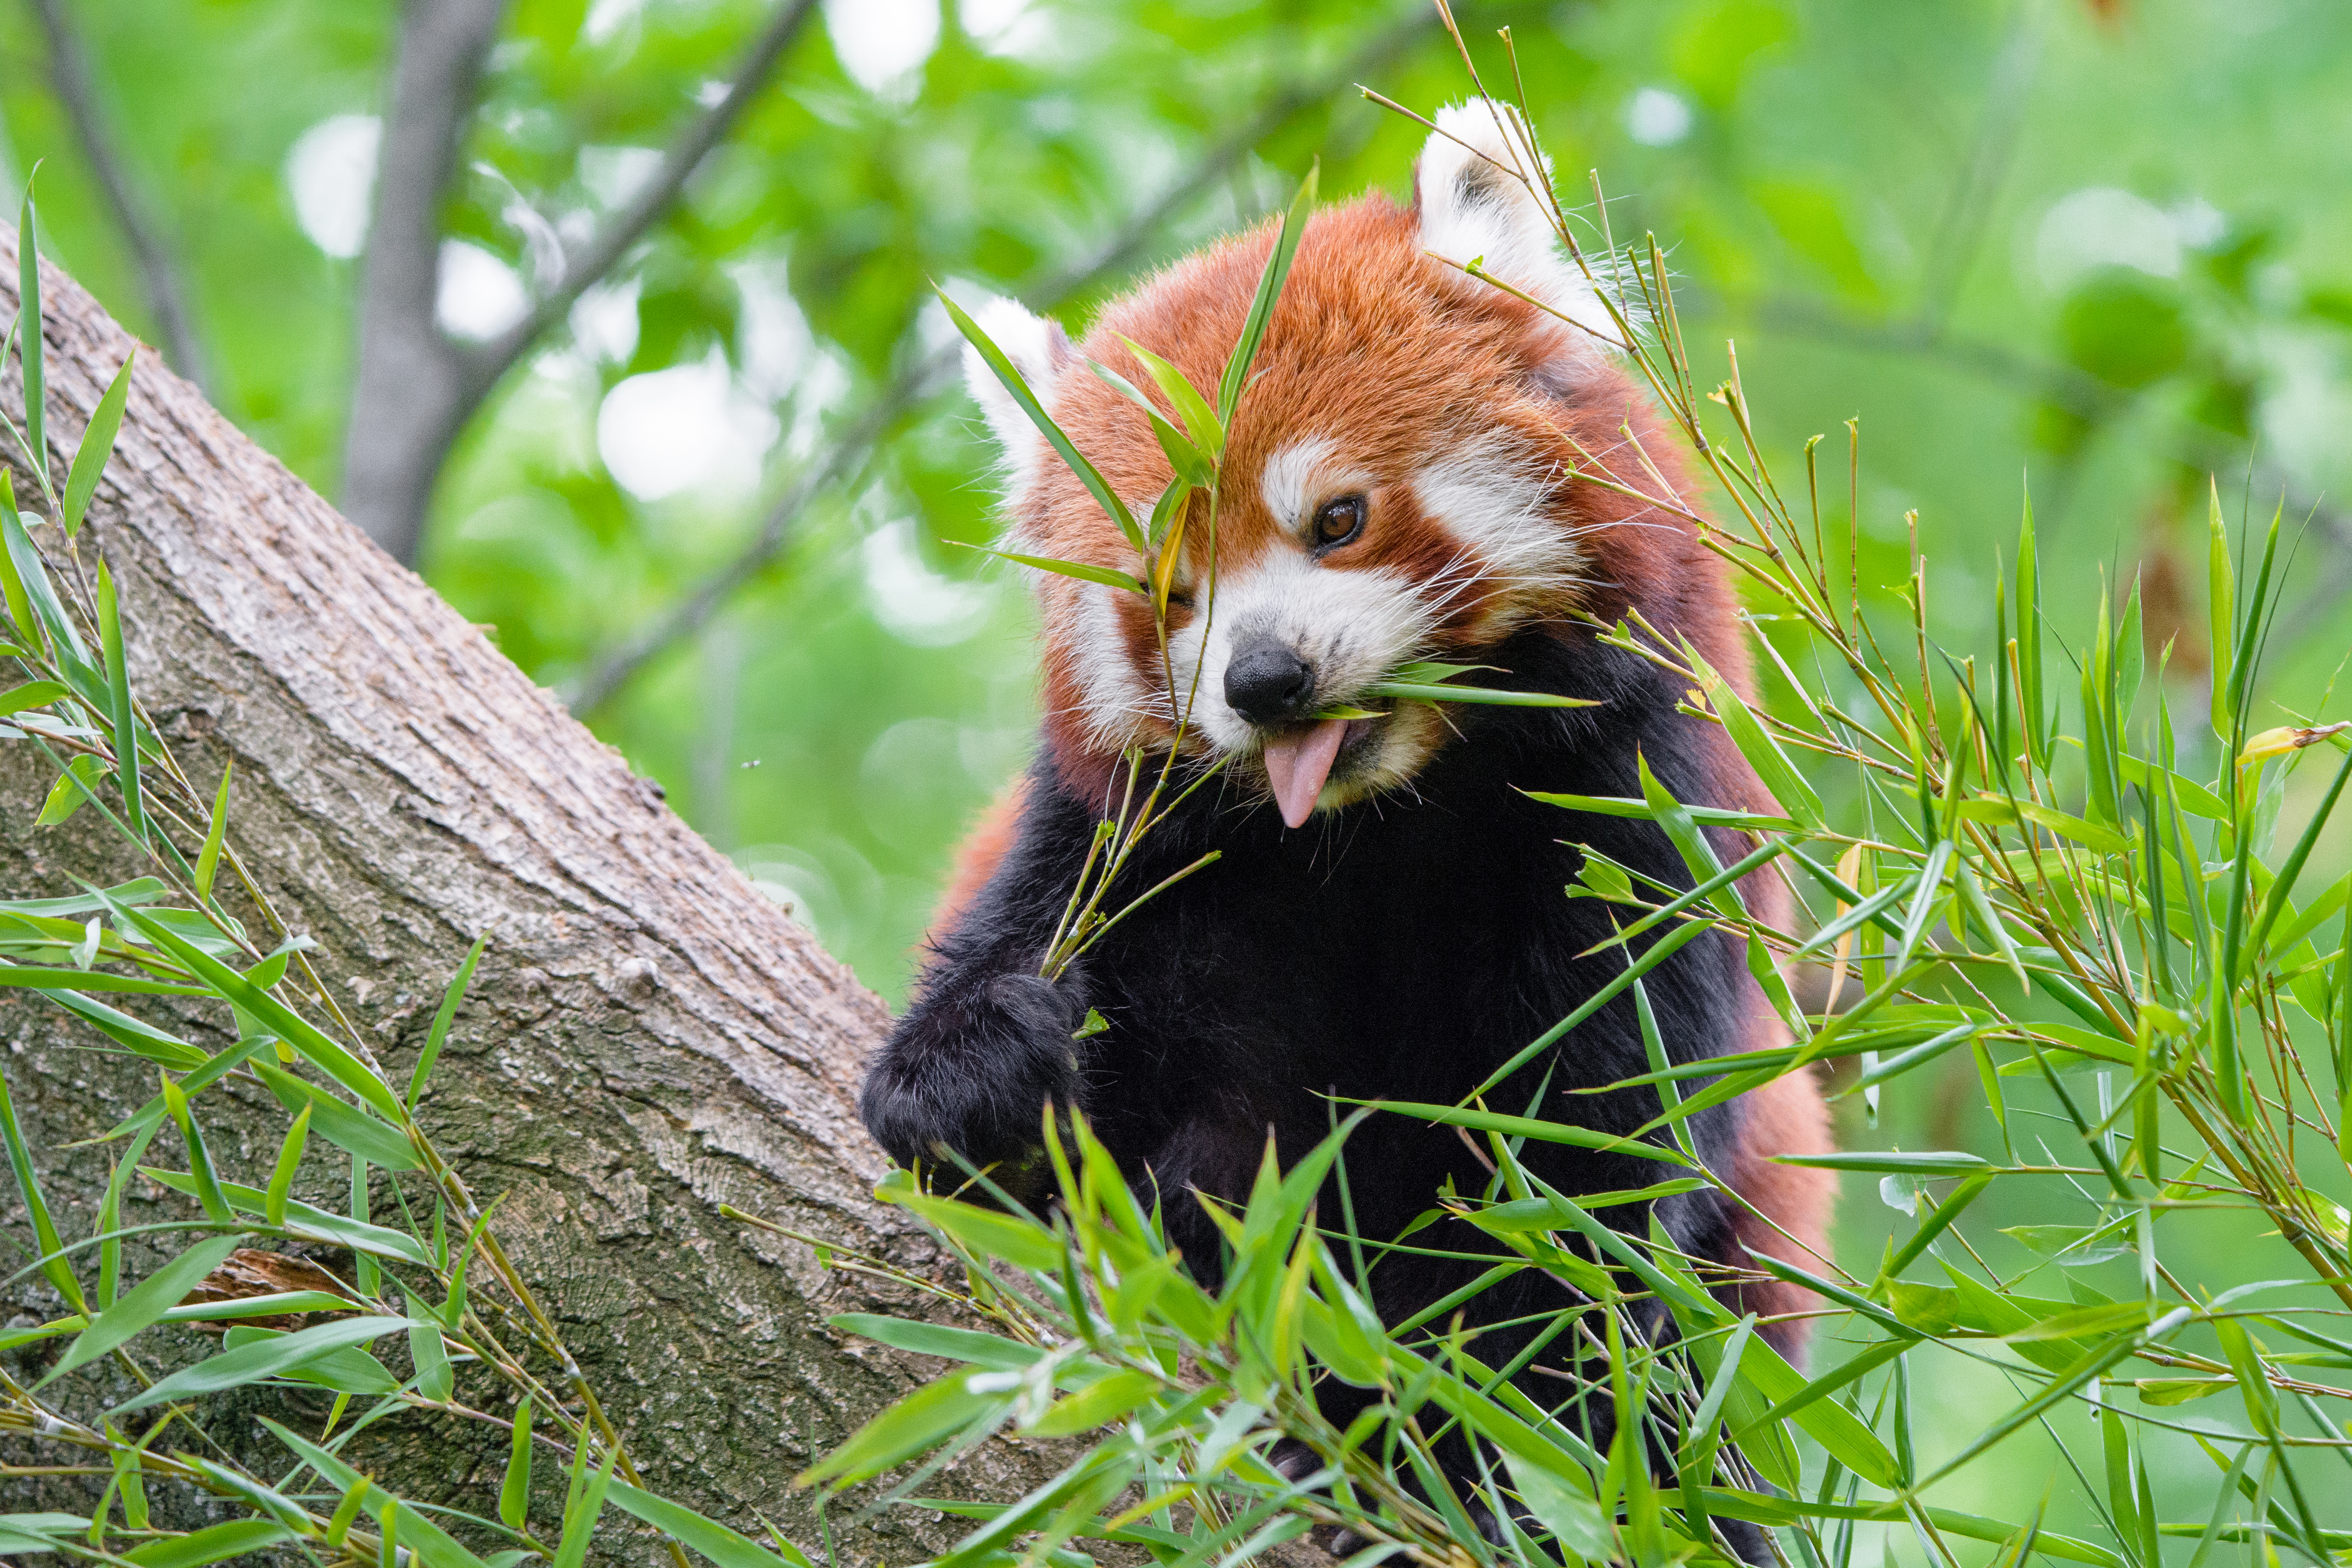 82510 Screensavers and Wallpapers Protruding Tongue for phone. Download Animals, Red Panda, Fiery Panda, Protruding Tongue, Tongue Stuck Out, Food pictures for free